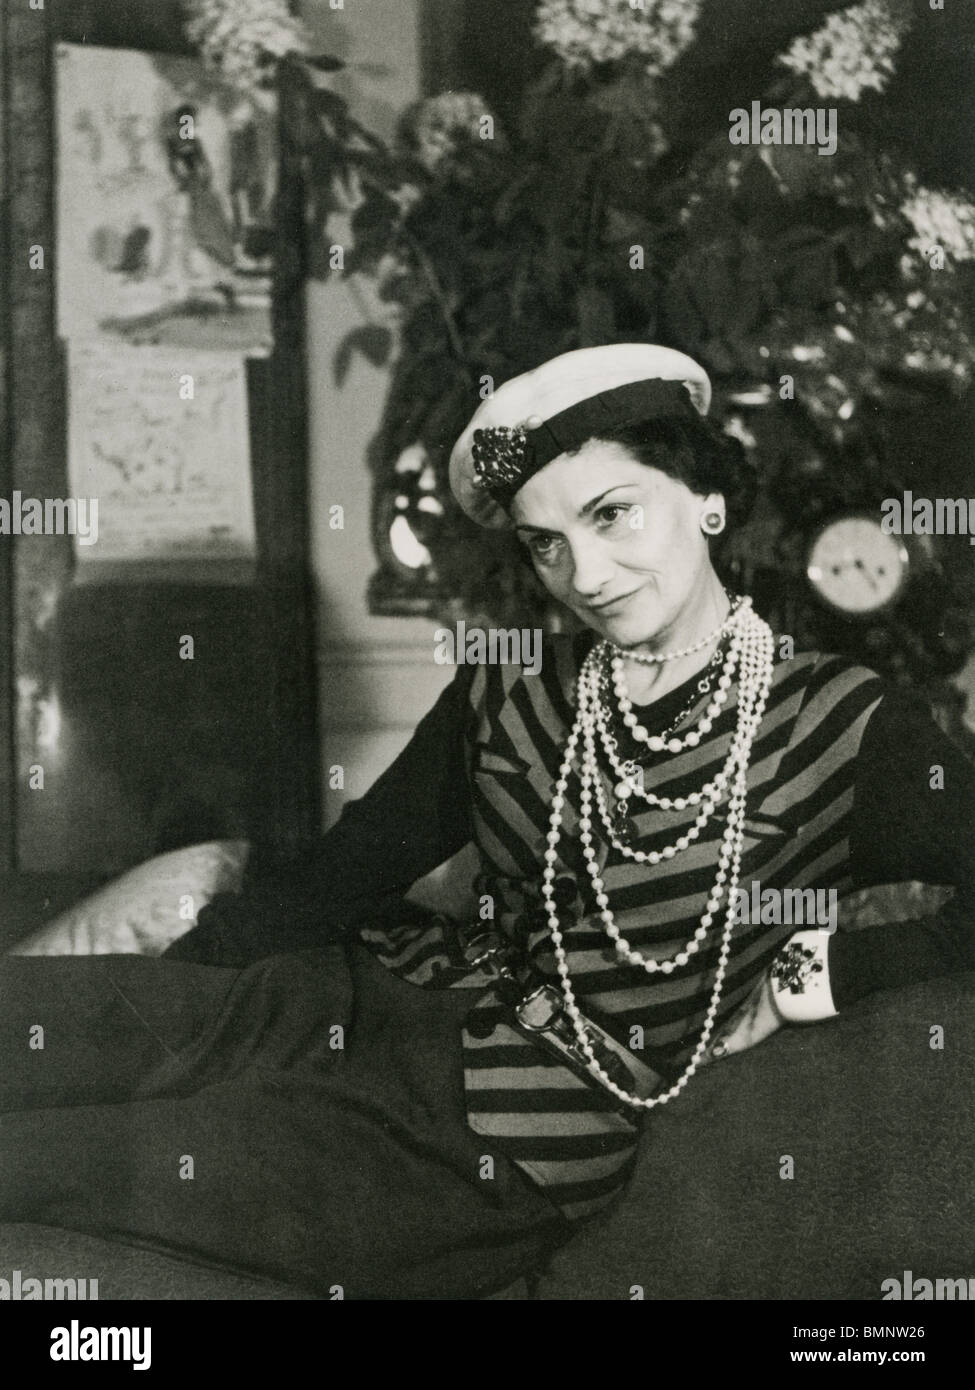 6bb8d3fbb94 COCO CHANEL - couturier français (1883-1971) ici en 1938 Photo Stock